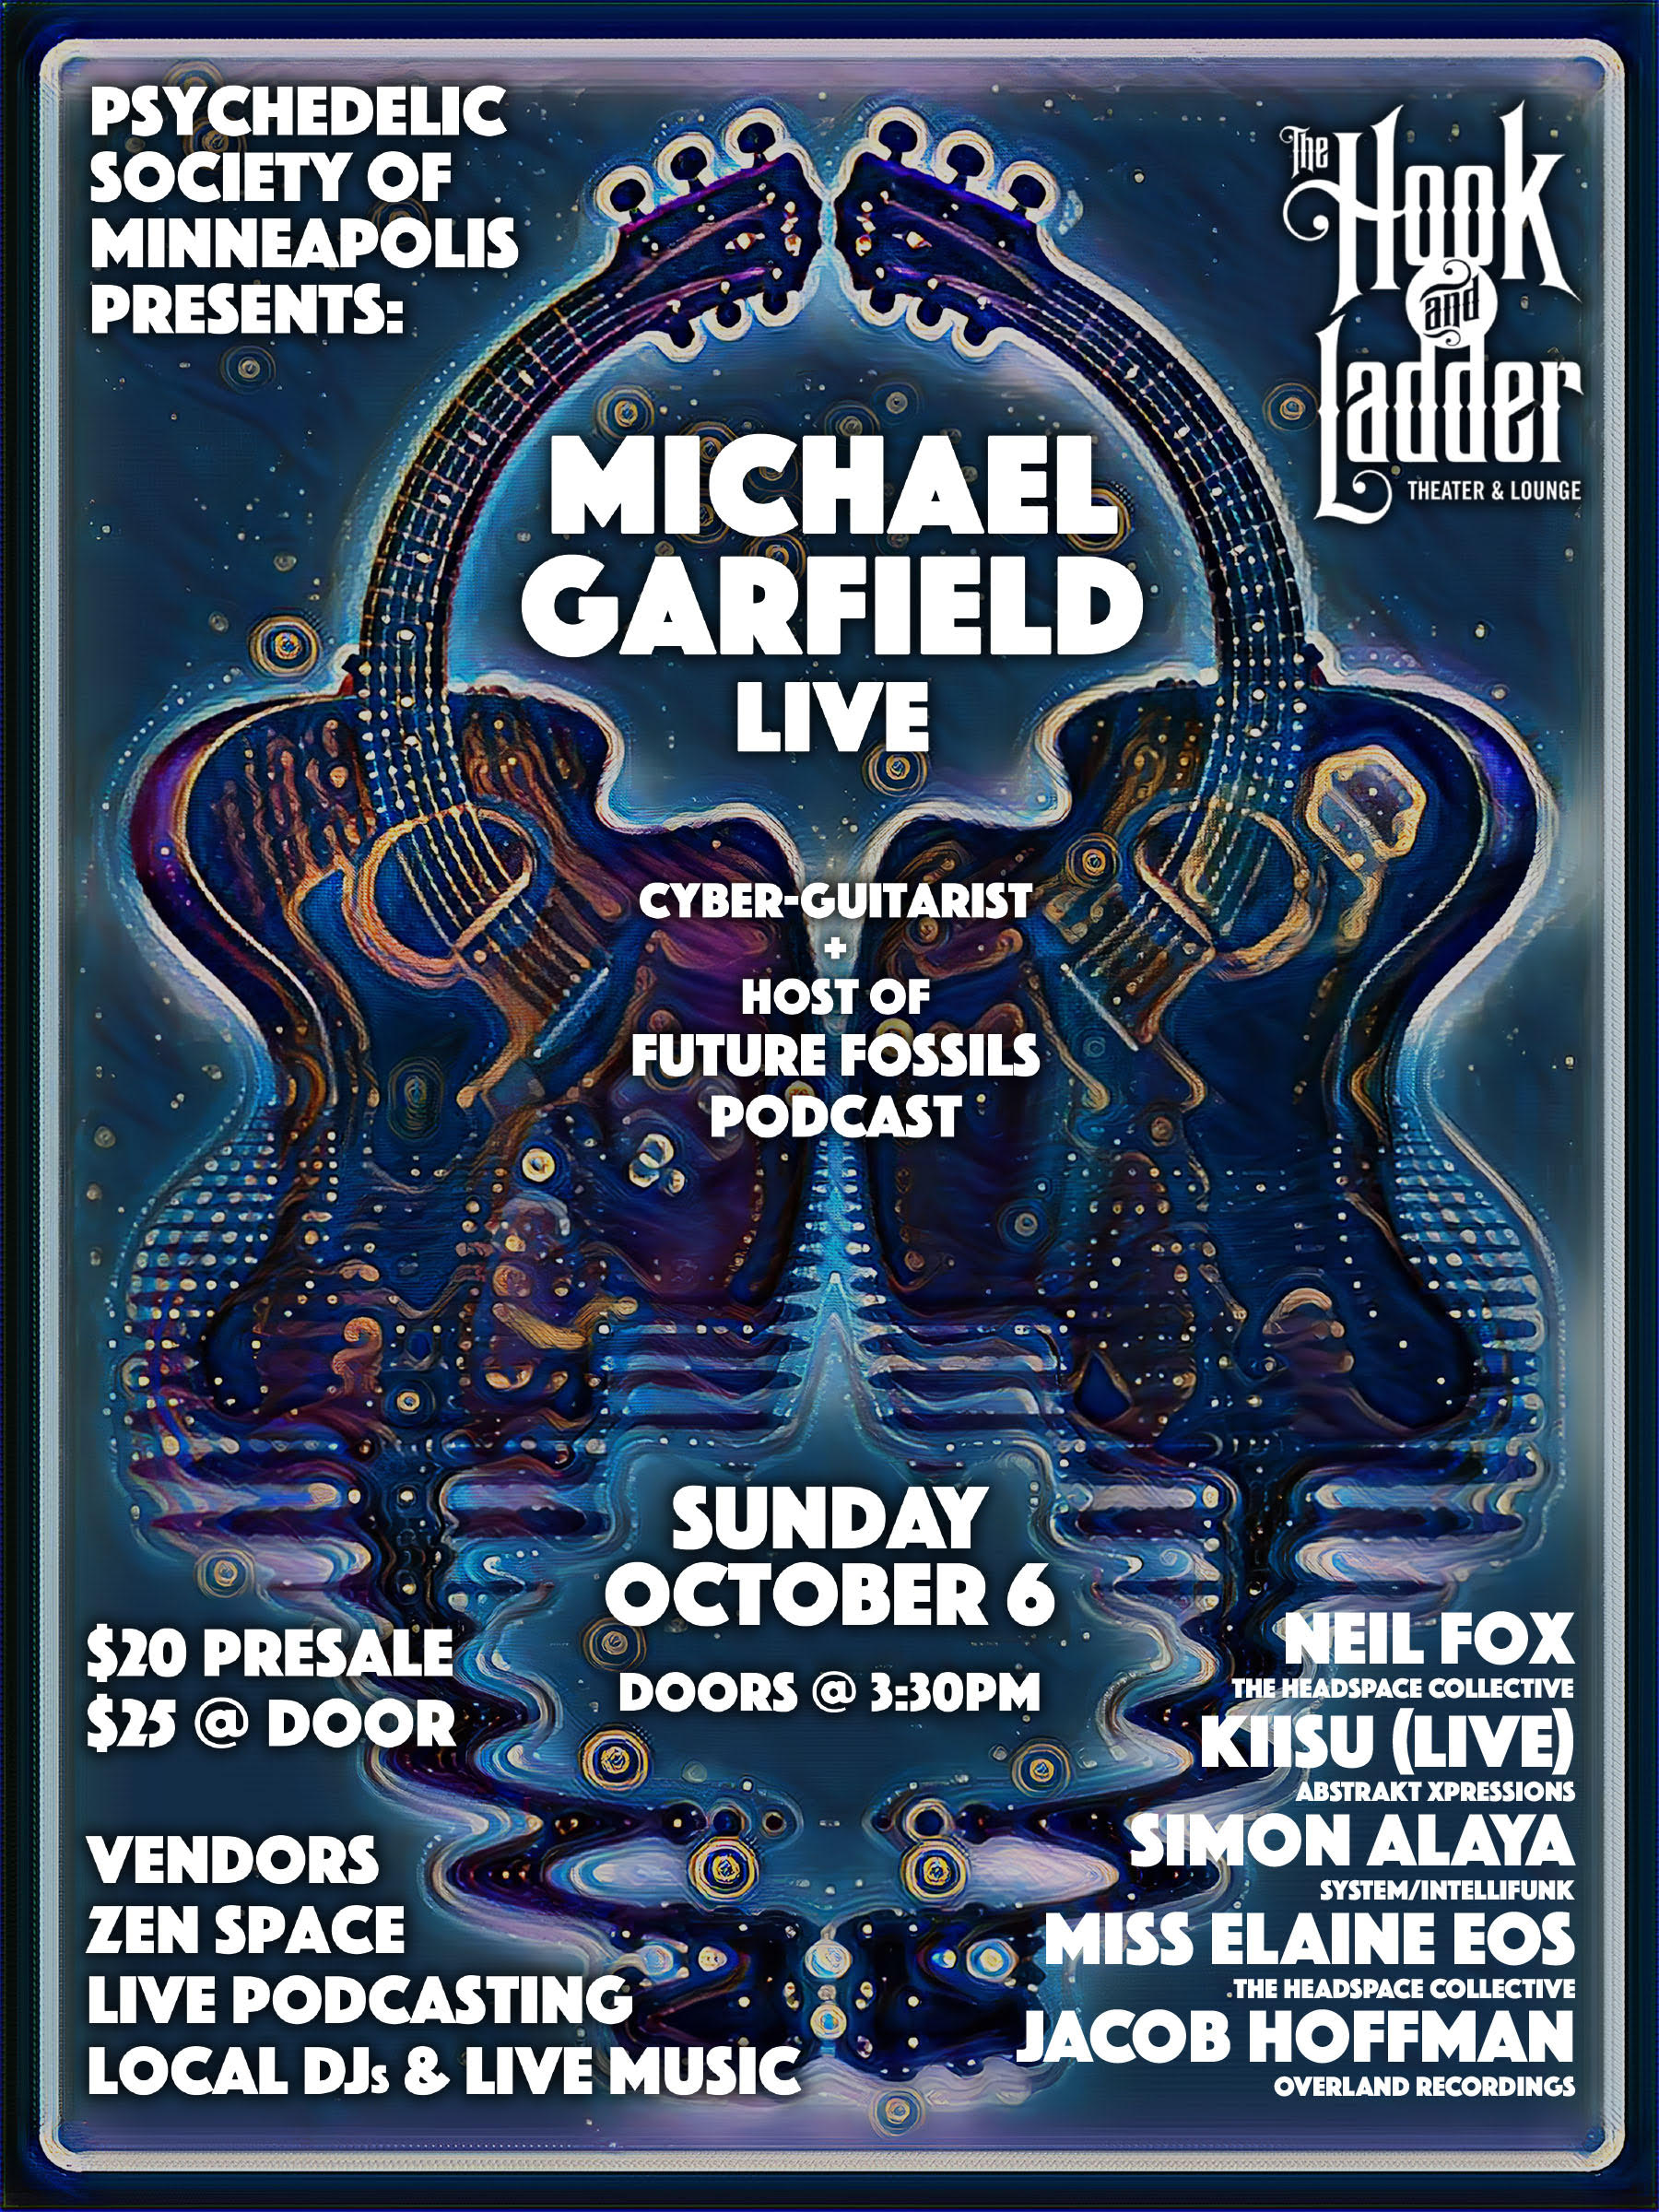 The Psychedelic Society of Minneapolis presents Michael Garfield on Sunday, October 6 at The Hook and Ladder Theater & Mission Room